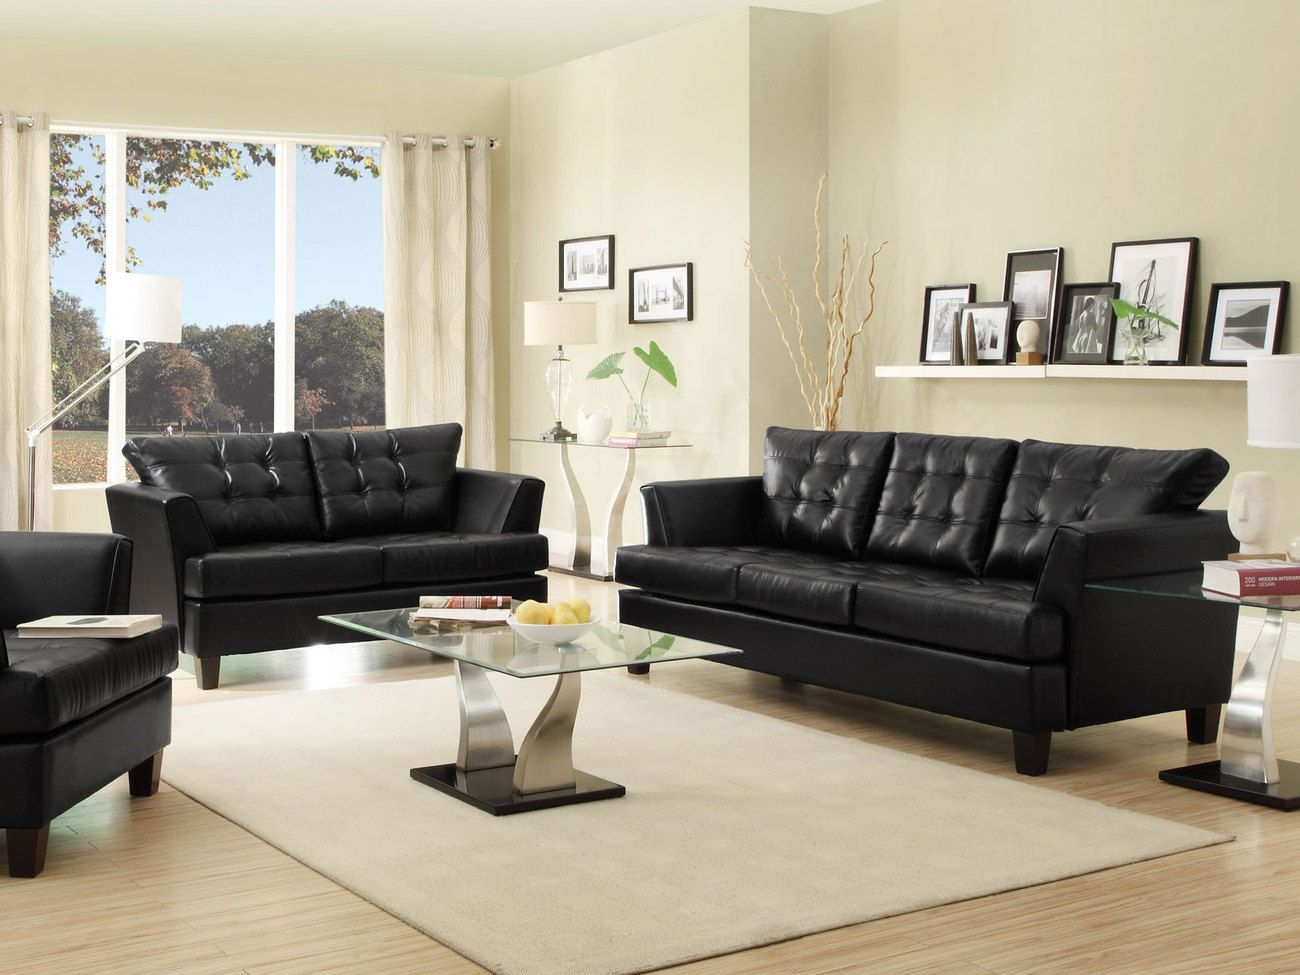 Living Room Design With Black Leather Sofa Captivating Living Room Decor With Black Leather Couches  Httptmidb Decorating Design